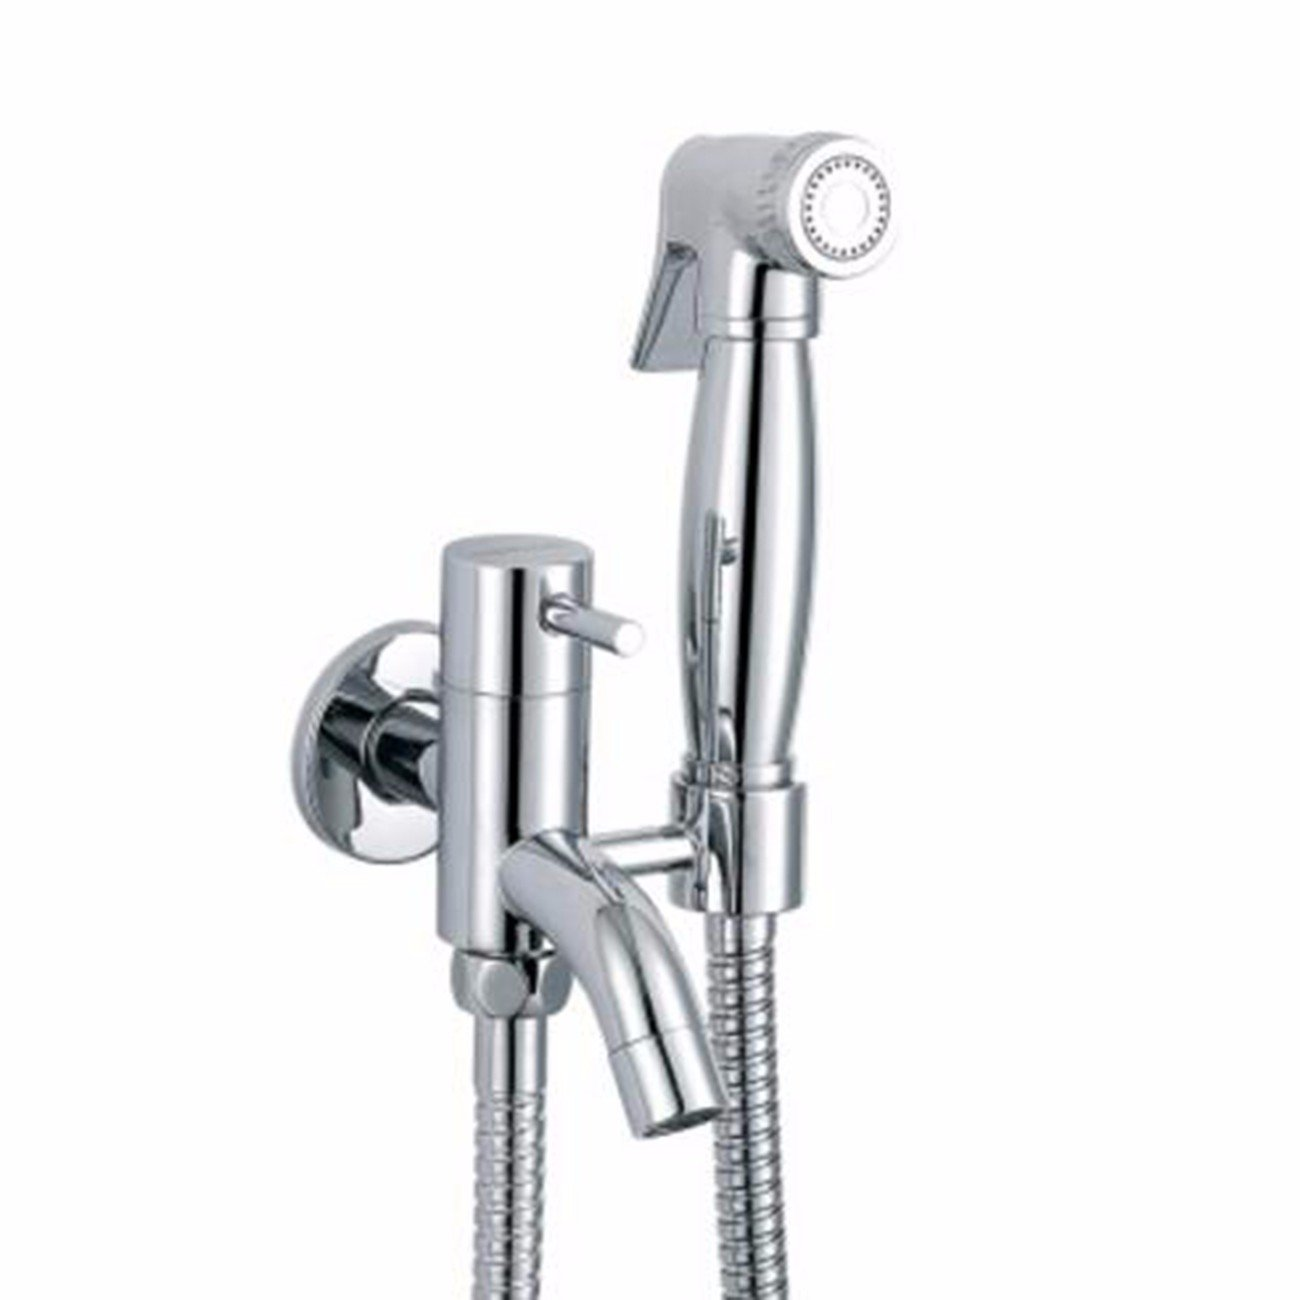 Brass One In Two Out Bidet Washer Body Washer Set Mop Pool Faucet With Spray Gun,A